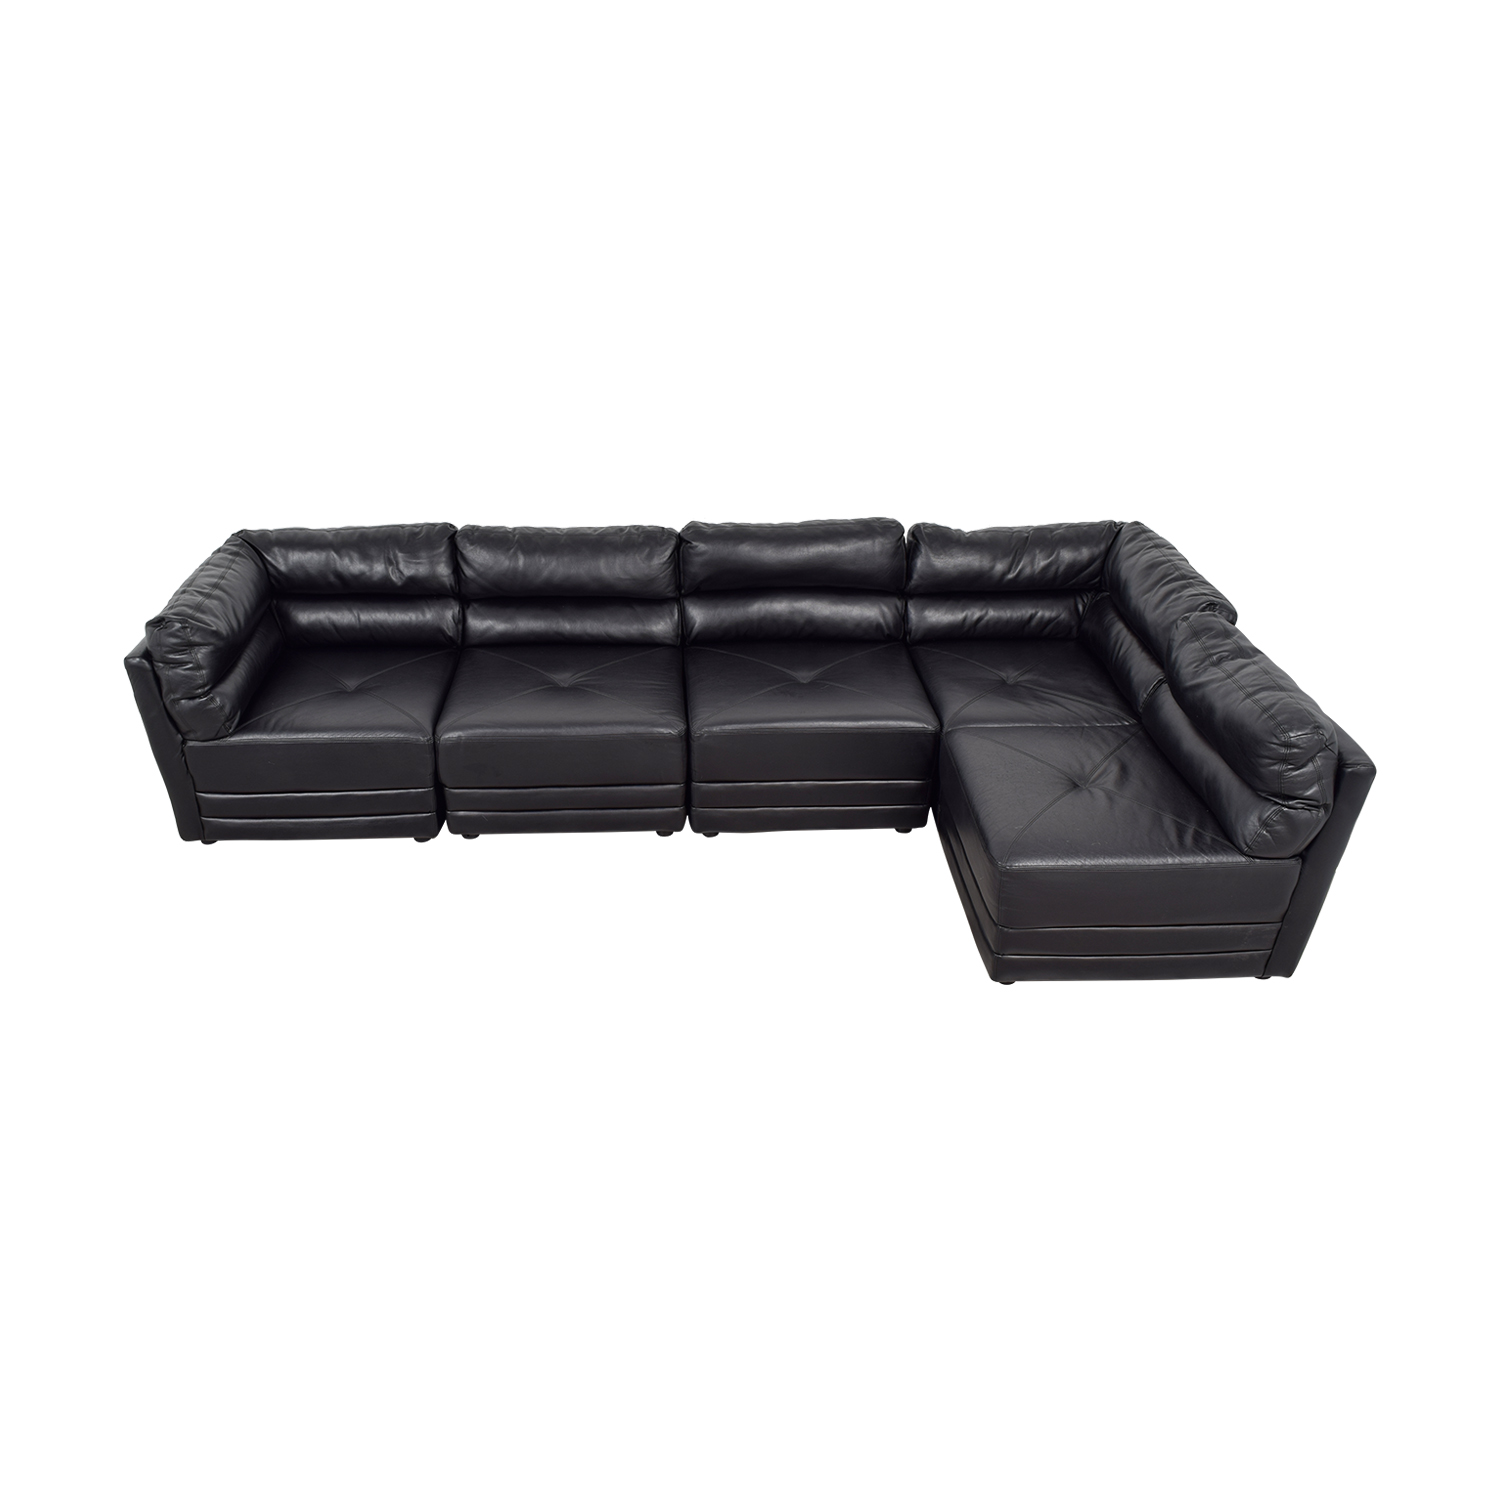 Black Leather L-Shaped Sectional nj